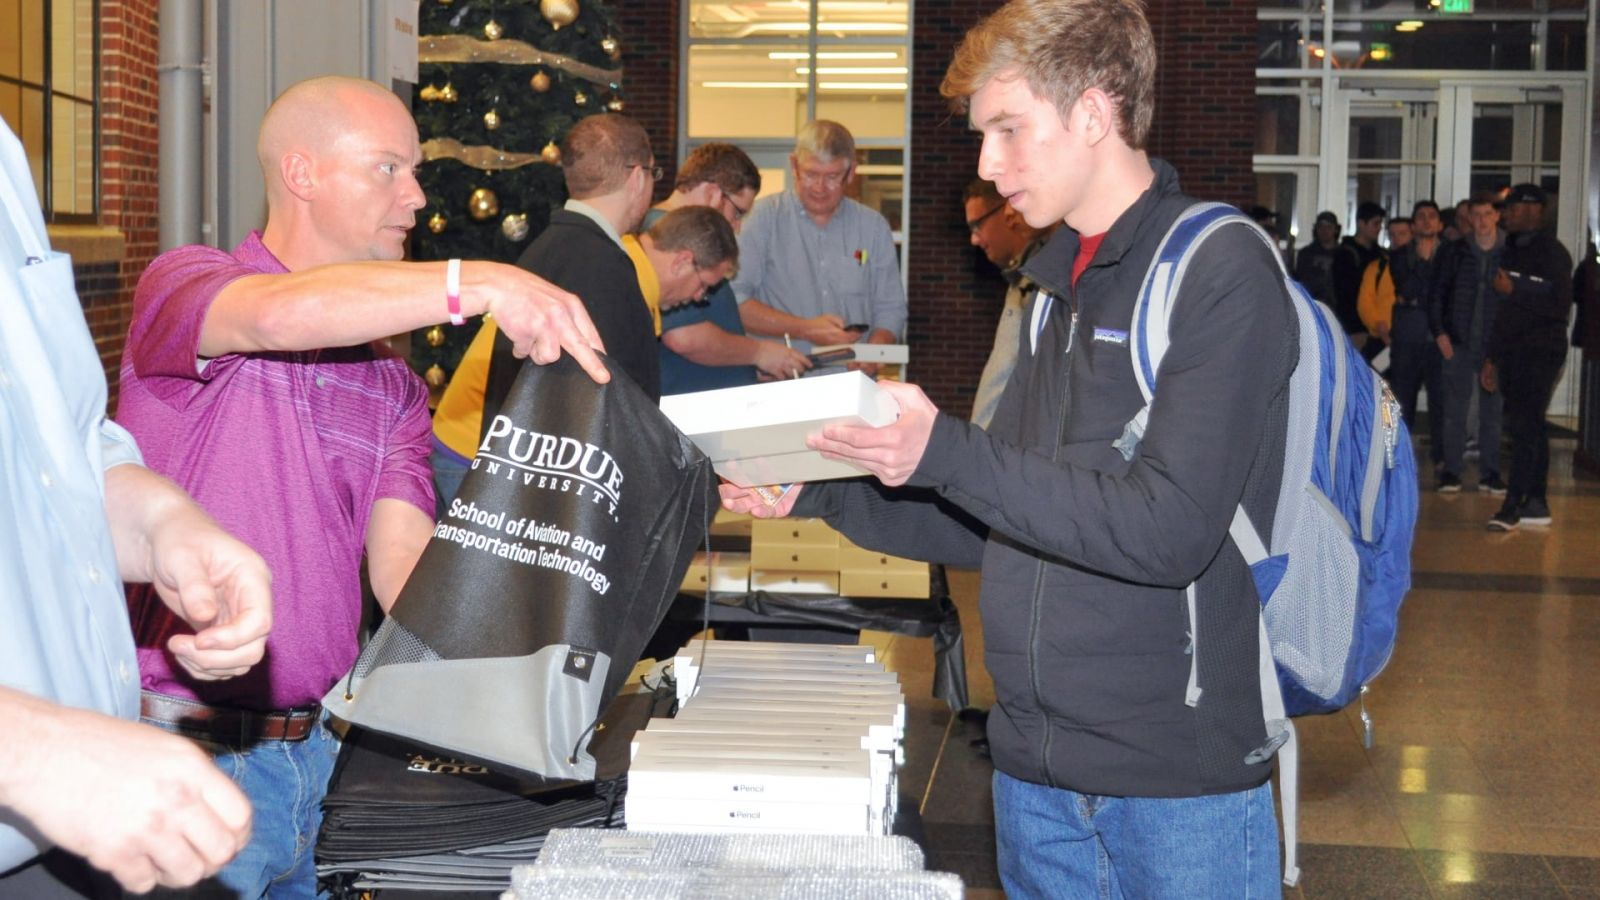 Purdue staff members distribute new Electronic Purdue Bags, each with iPad, Apple Pencil & Logitech keyboards, to students in the School of Aviation and Transportation Technology